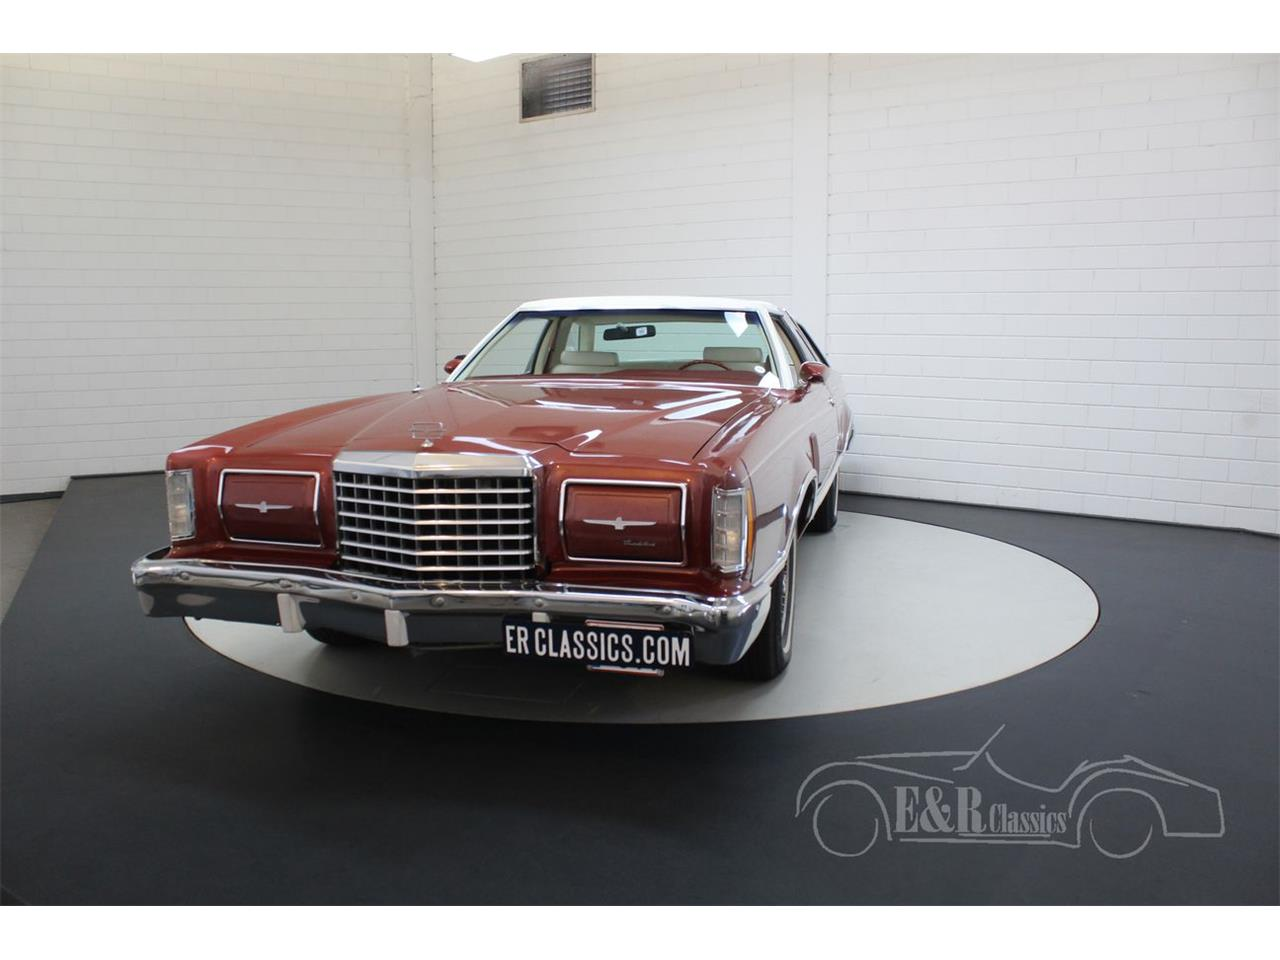 1978 Ford Thunderbird (CC-1273354) for sale in Waalwijk, Noord-Brabant